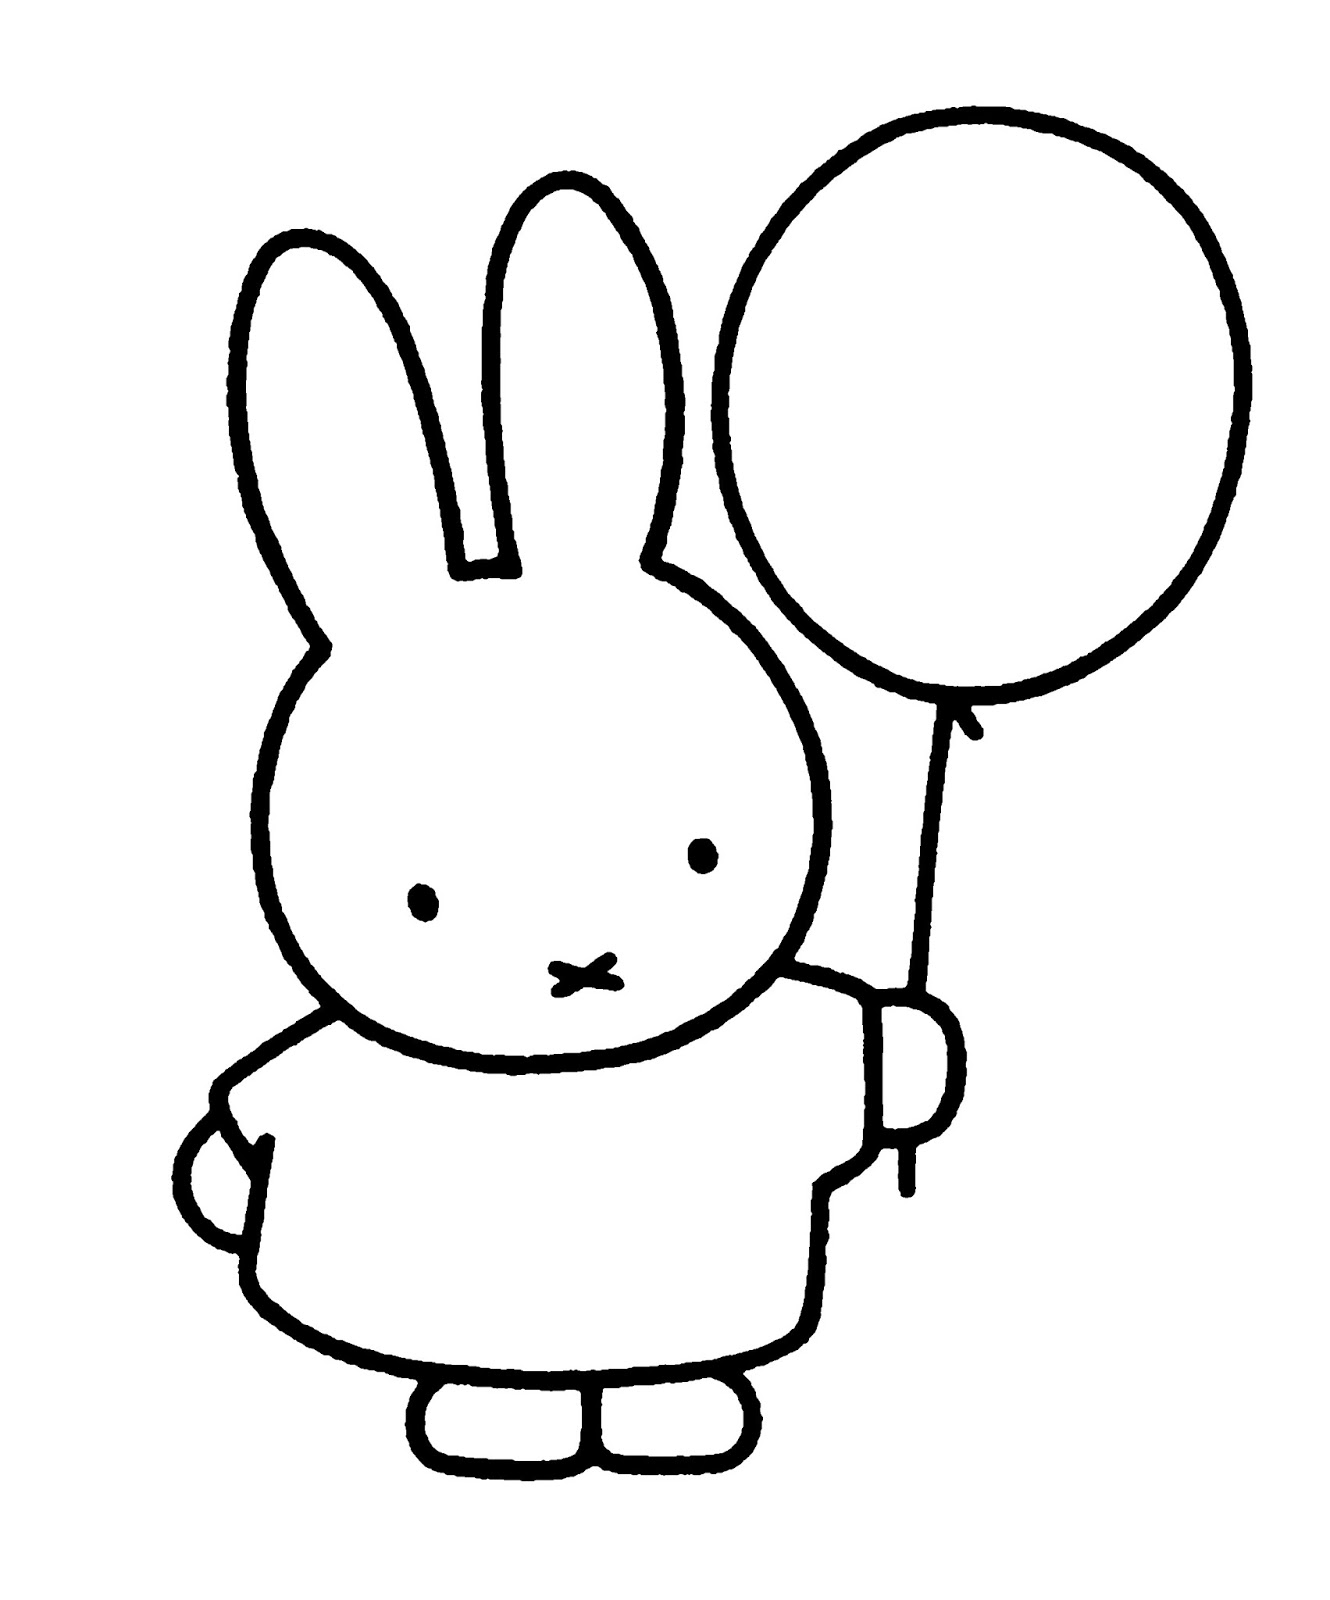 Uncategorized Miffy Coloring Pages cartoon images for colouring source httpwww coloring kids net